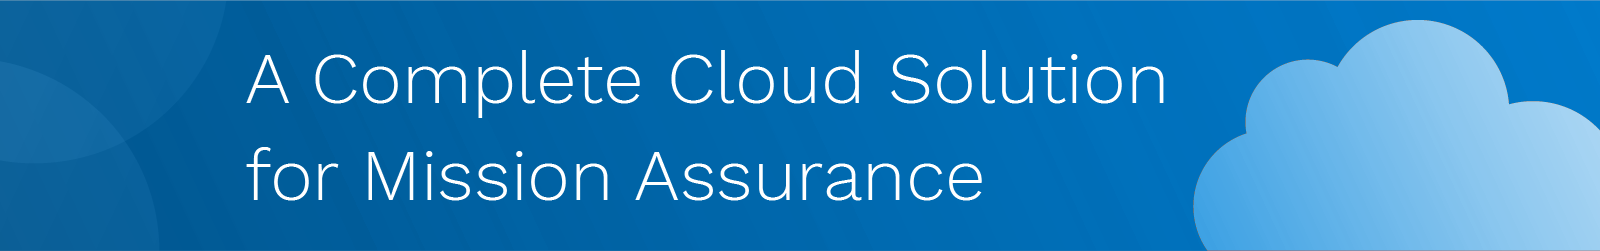 A Complete Cloud Solution for Mission Assurance